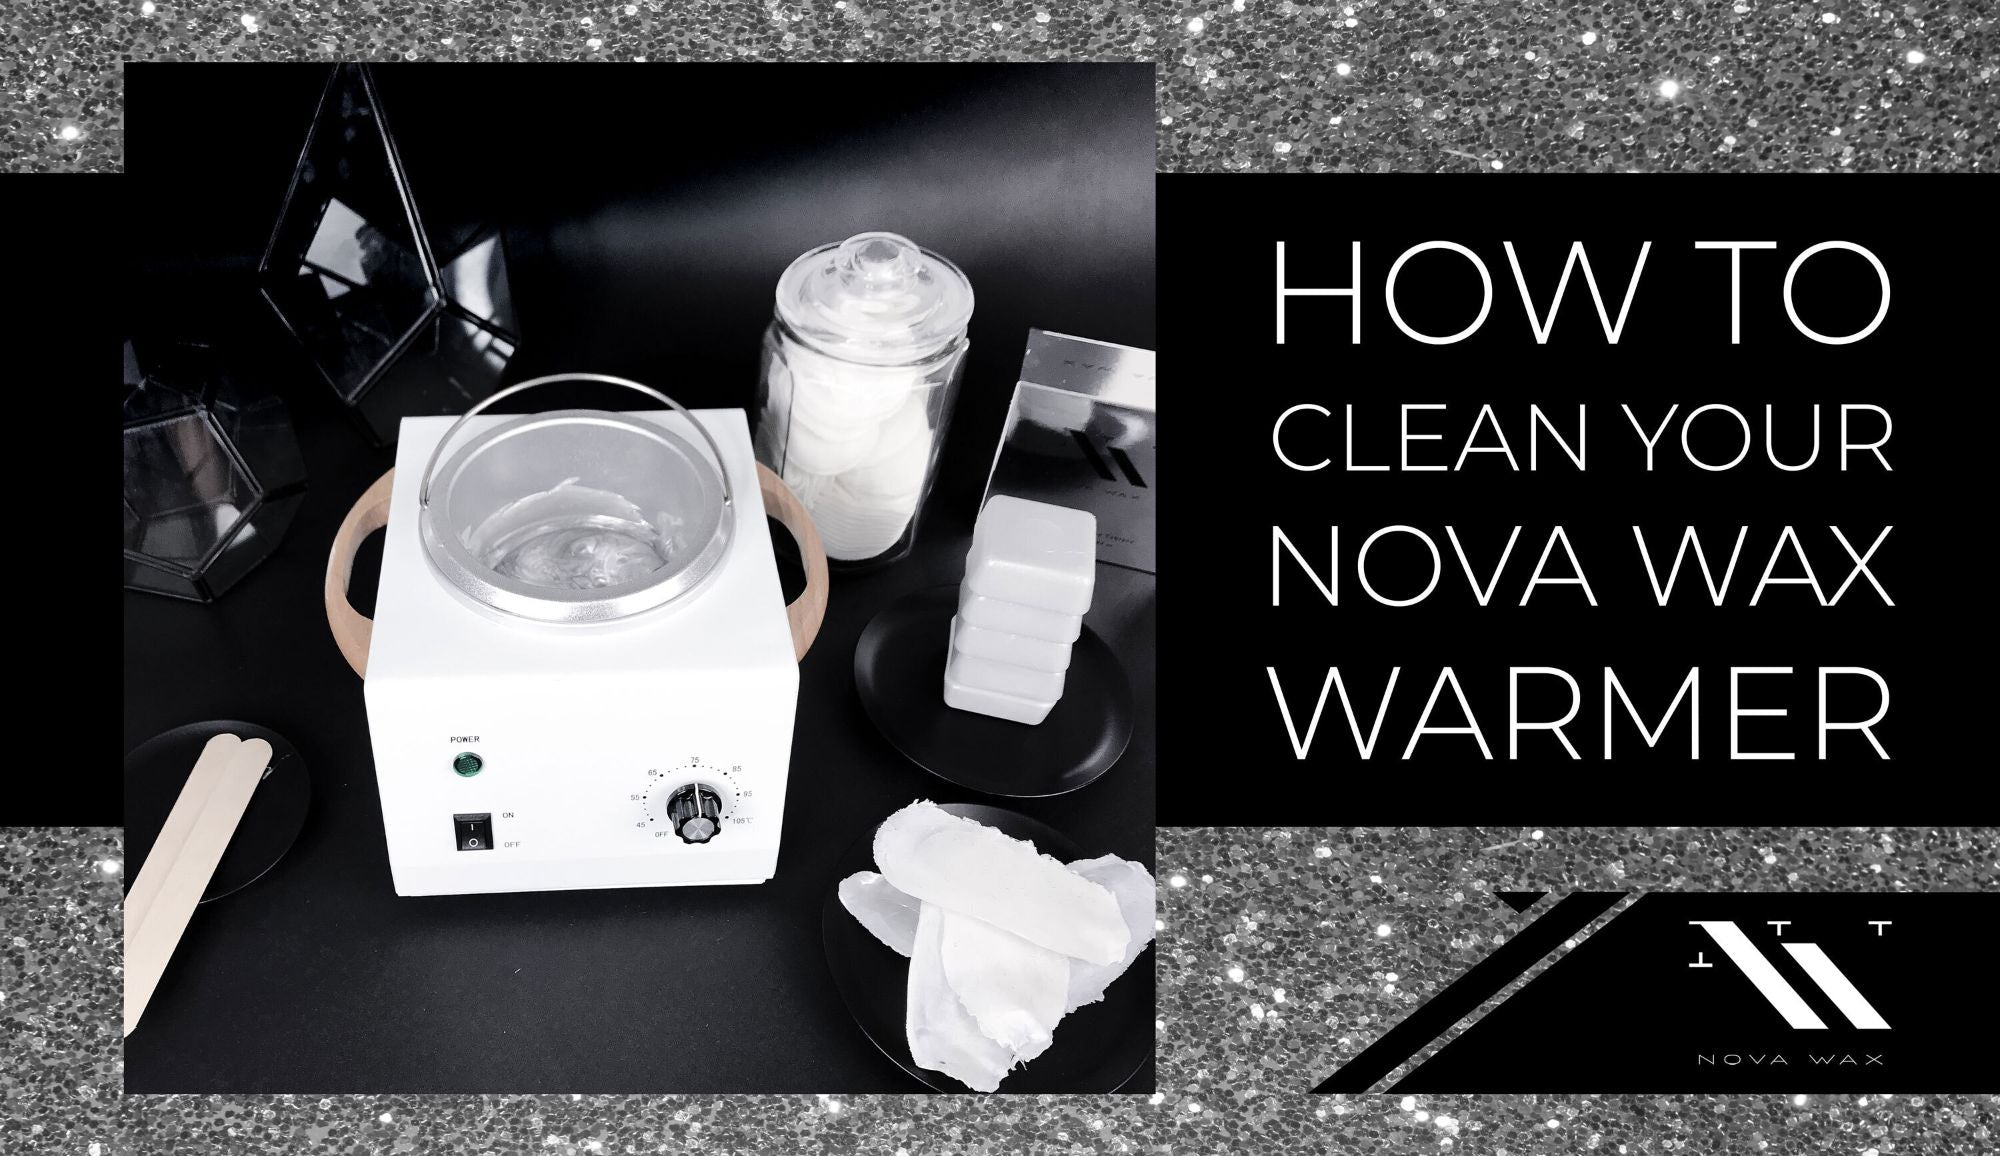 How to Clean Your Nova Wax Warmer